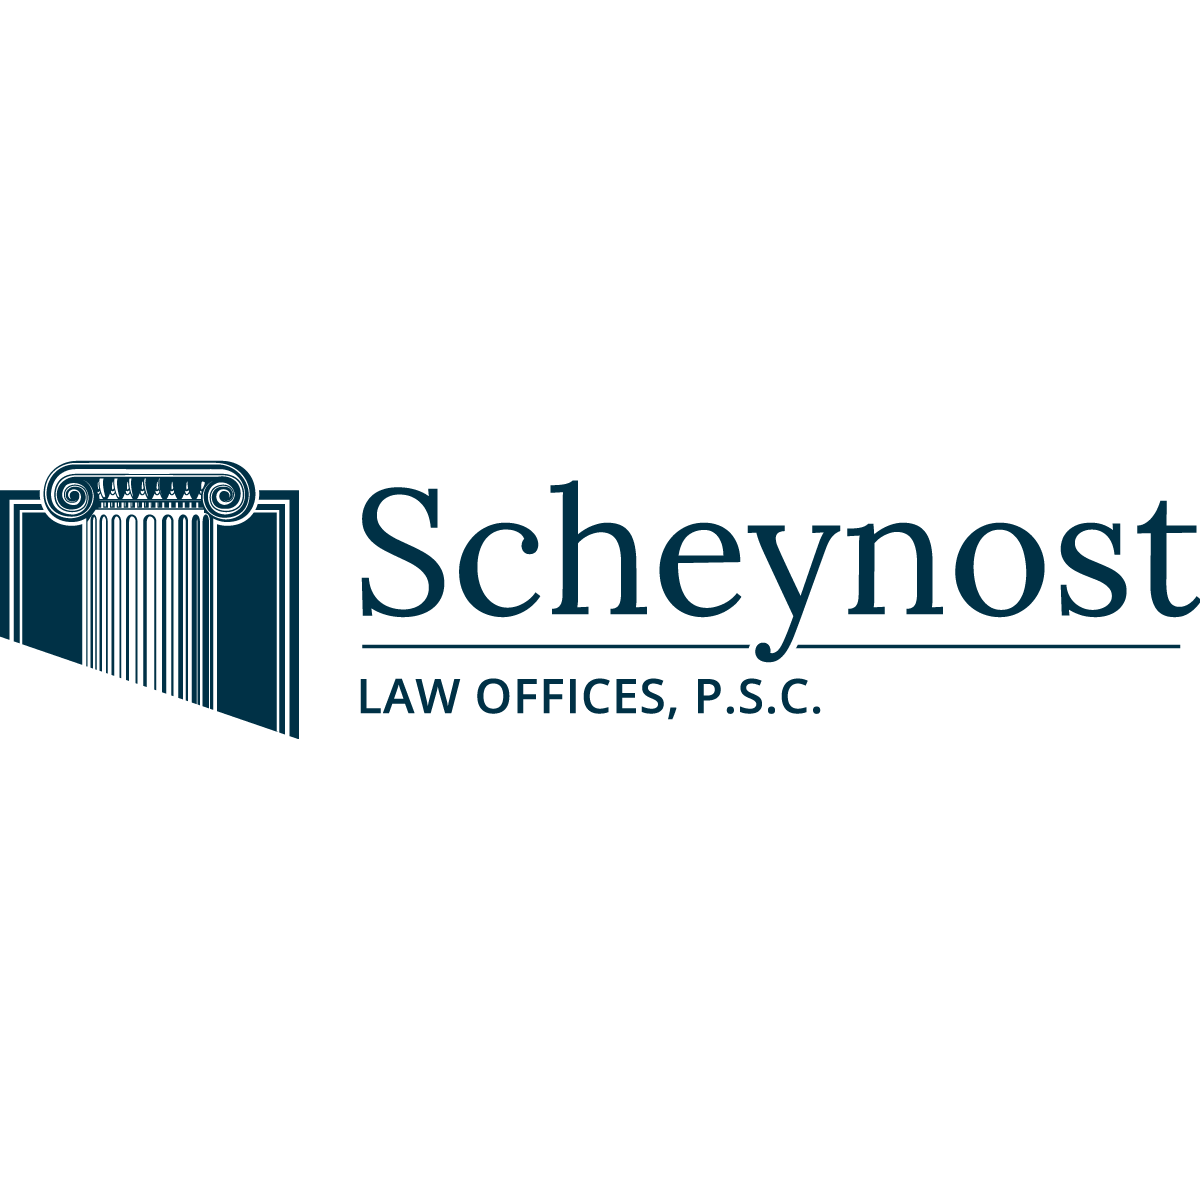 Scheynost Law Offices, P.S.C.